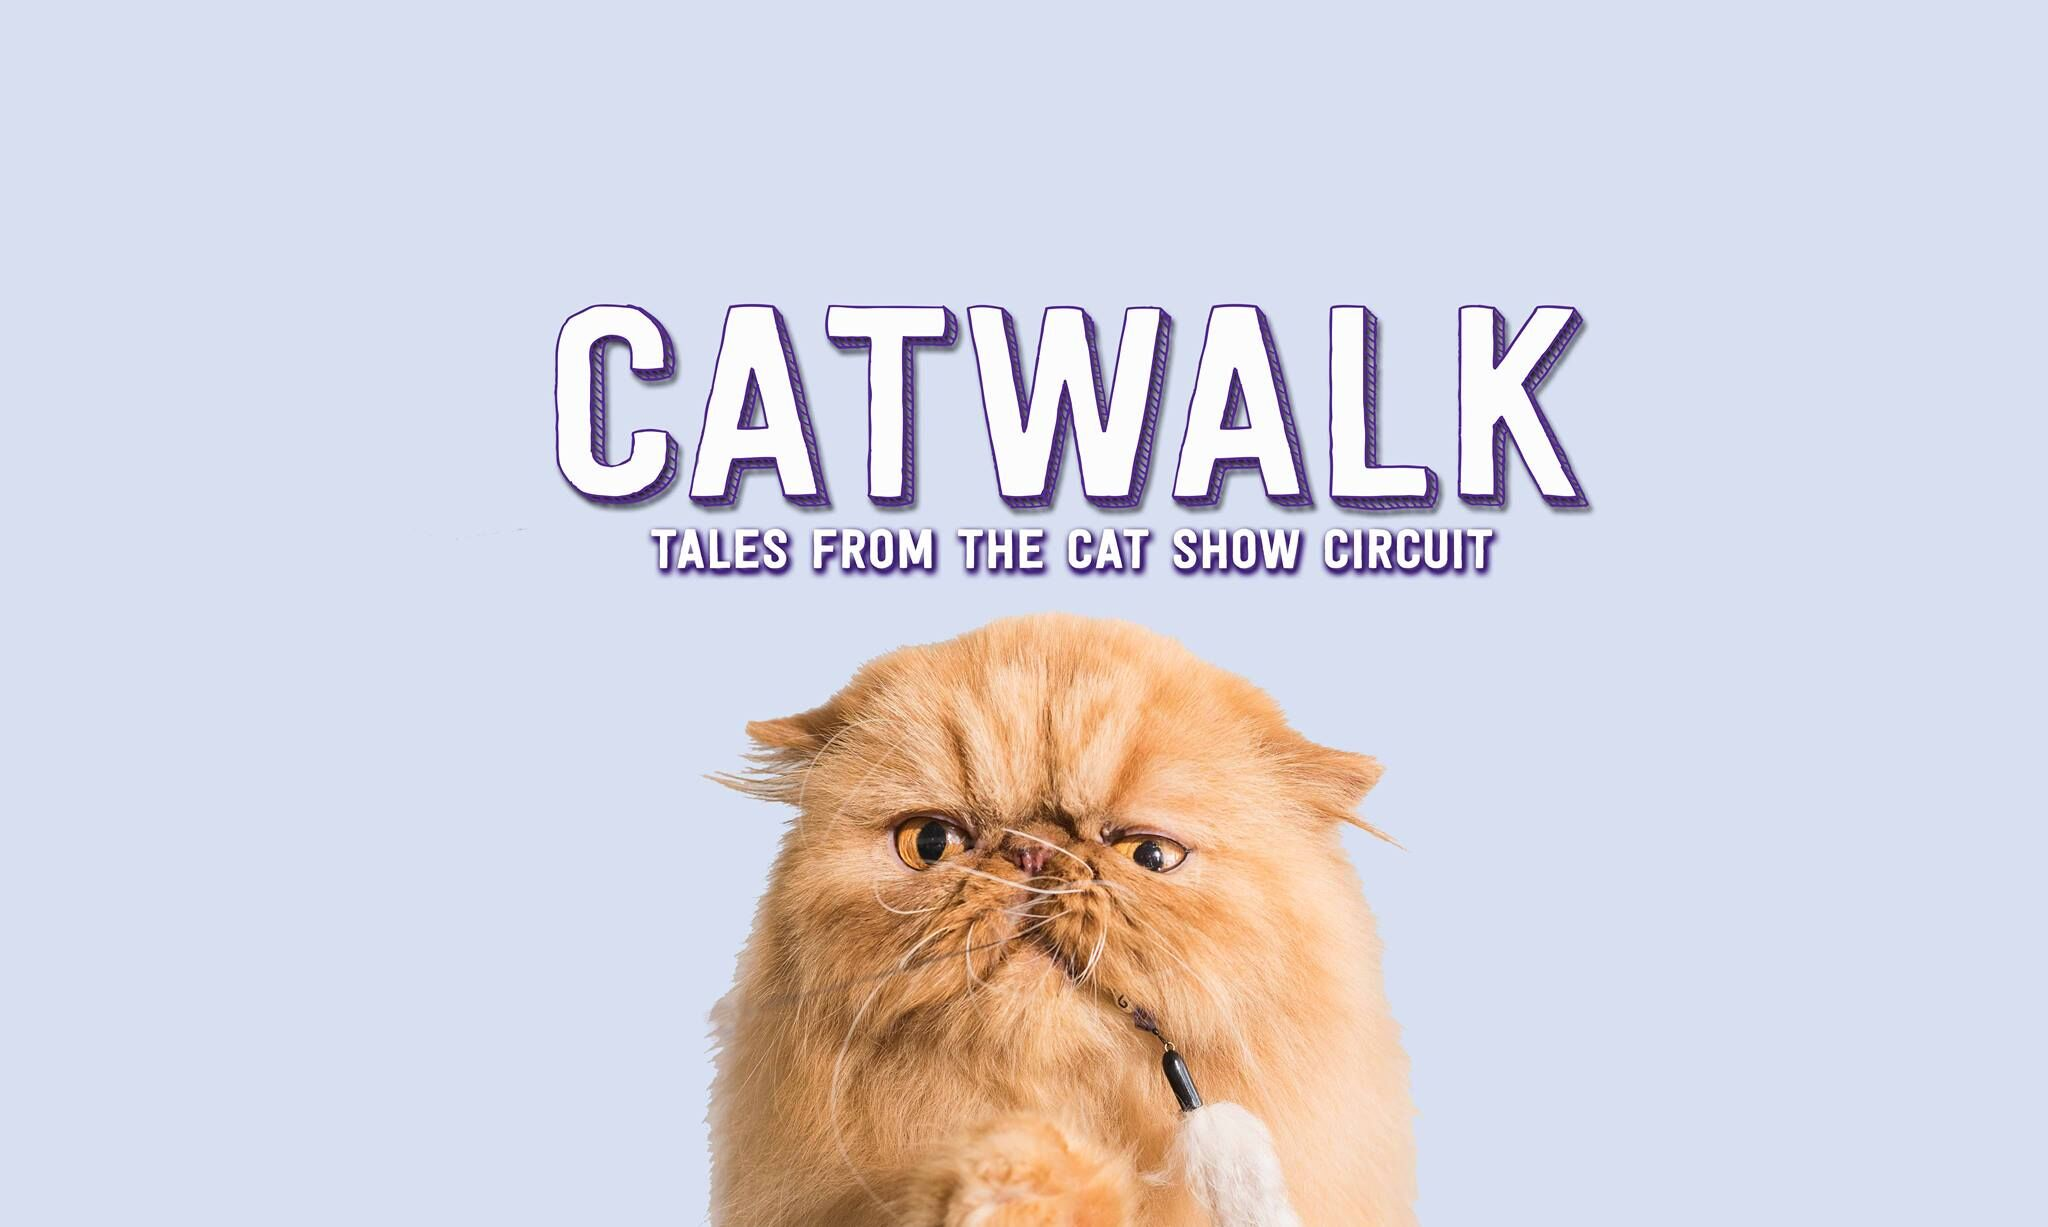 Catwalk: Tales From the Cat Show Circuit